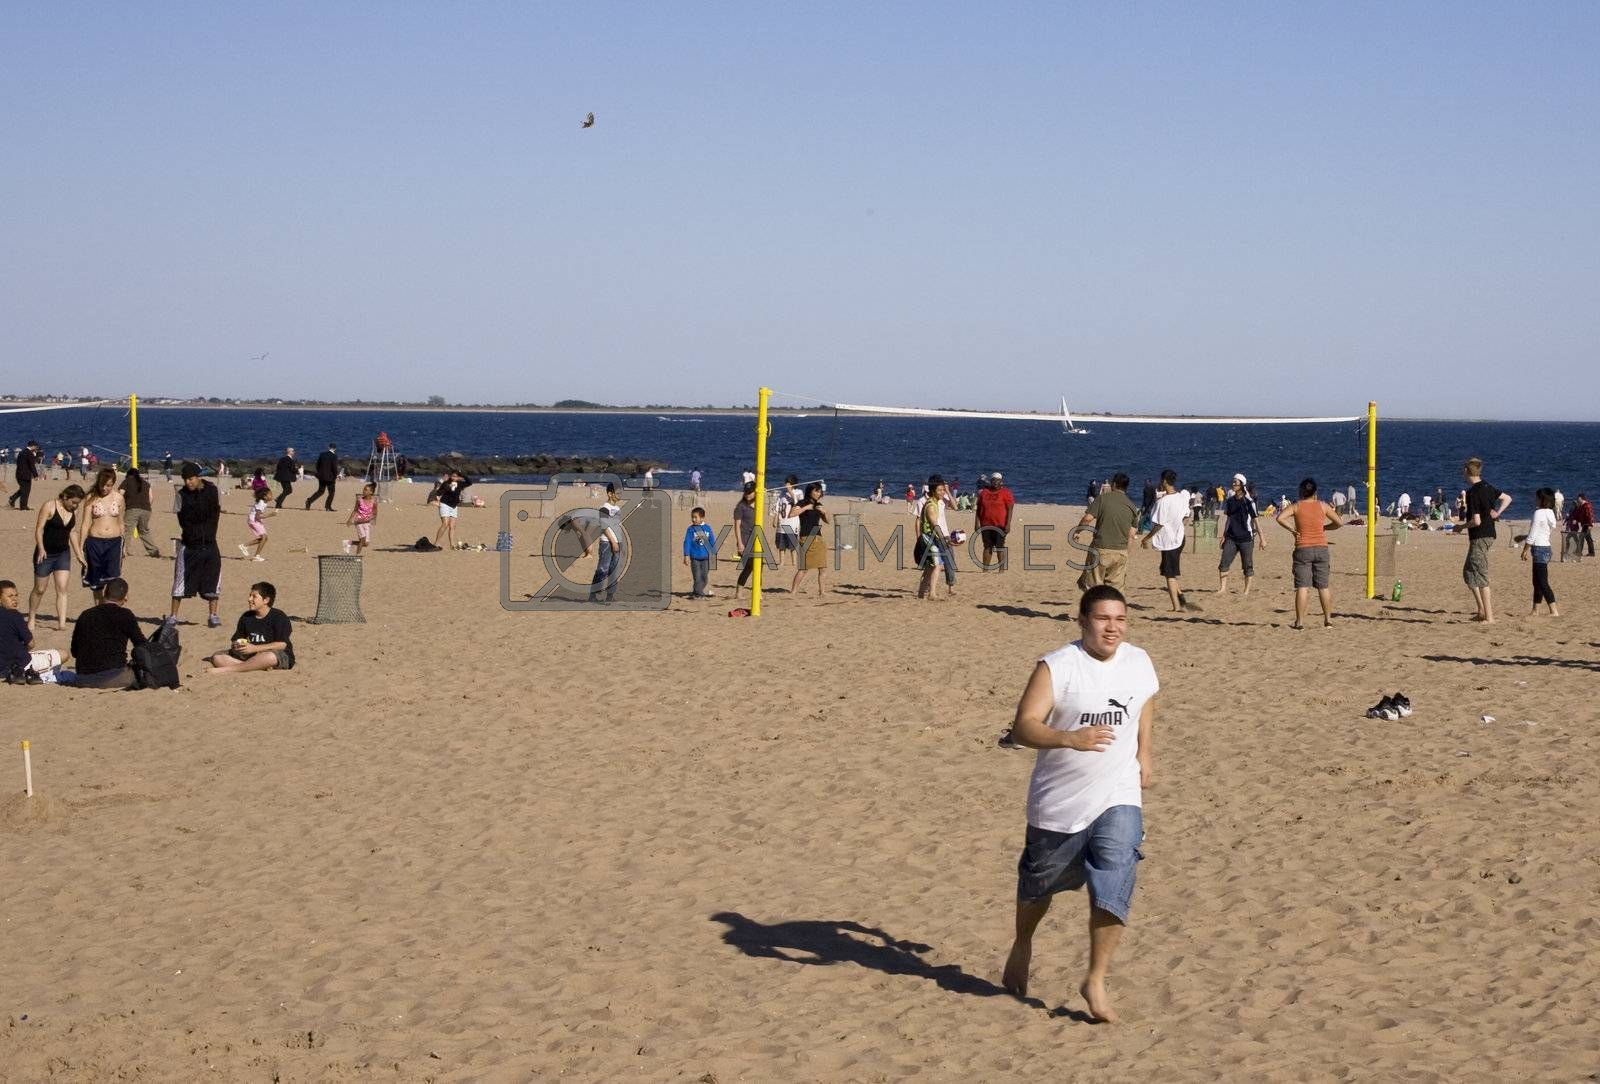 Volleyball at Coney Island Beach on Memorial Day weekend 2008.